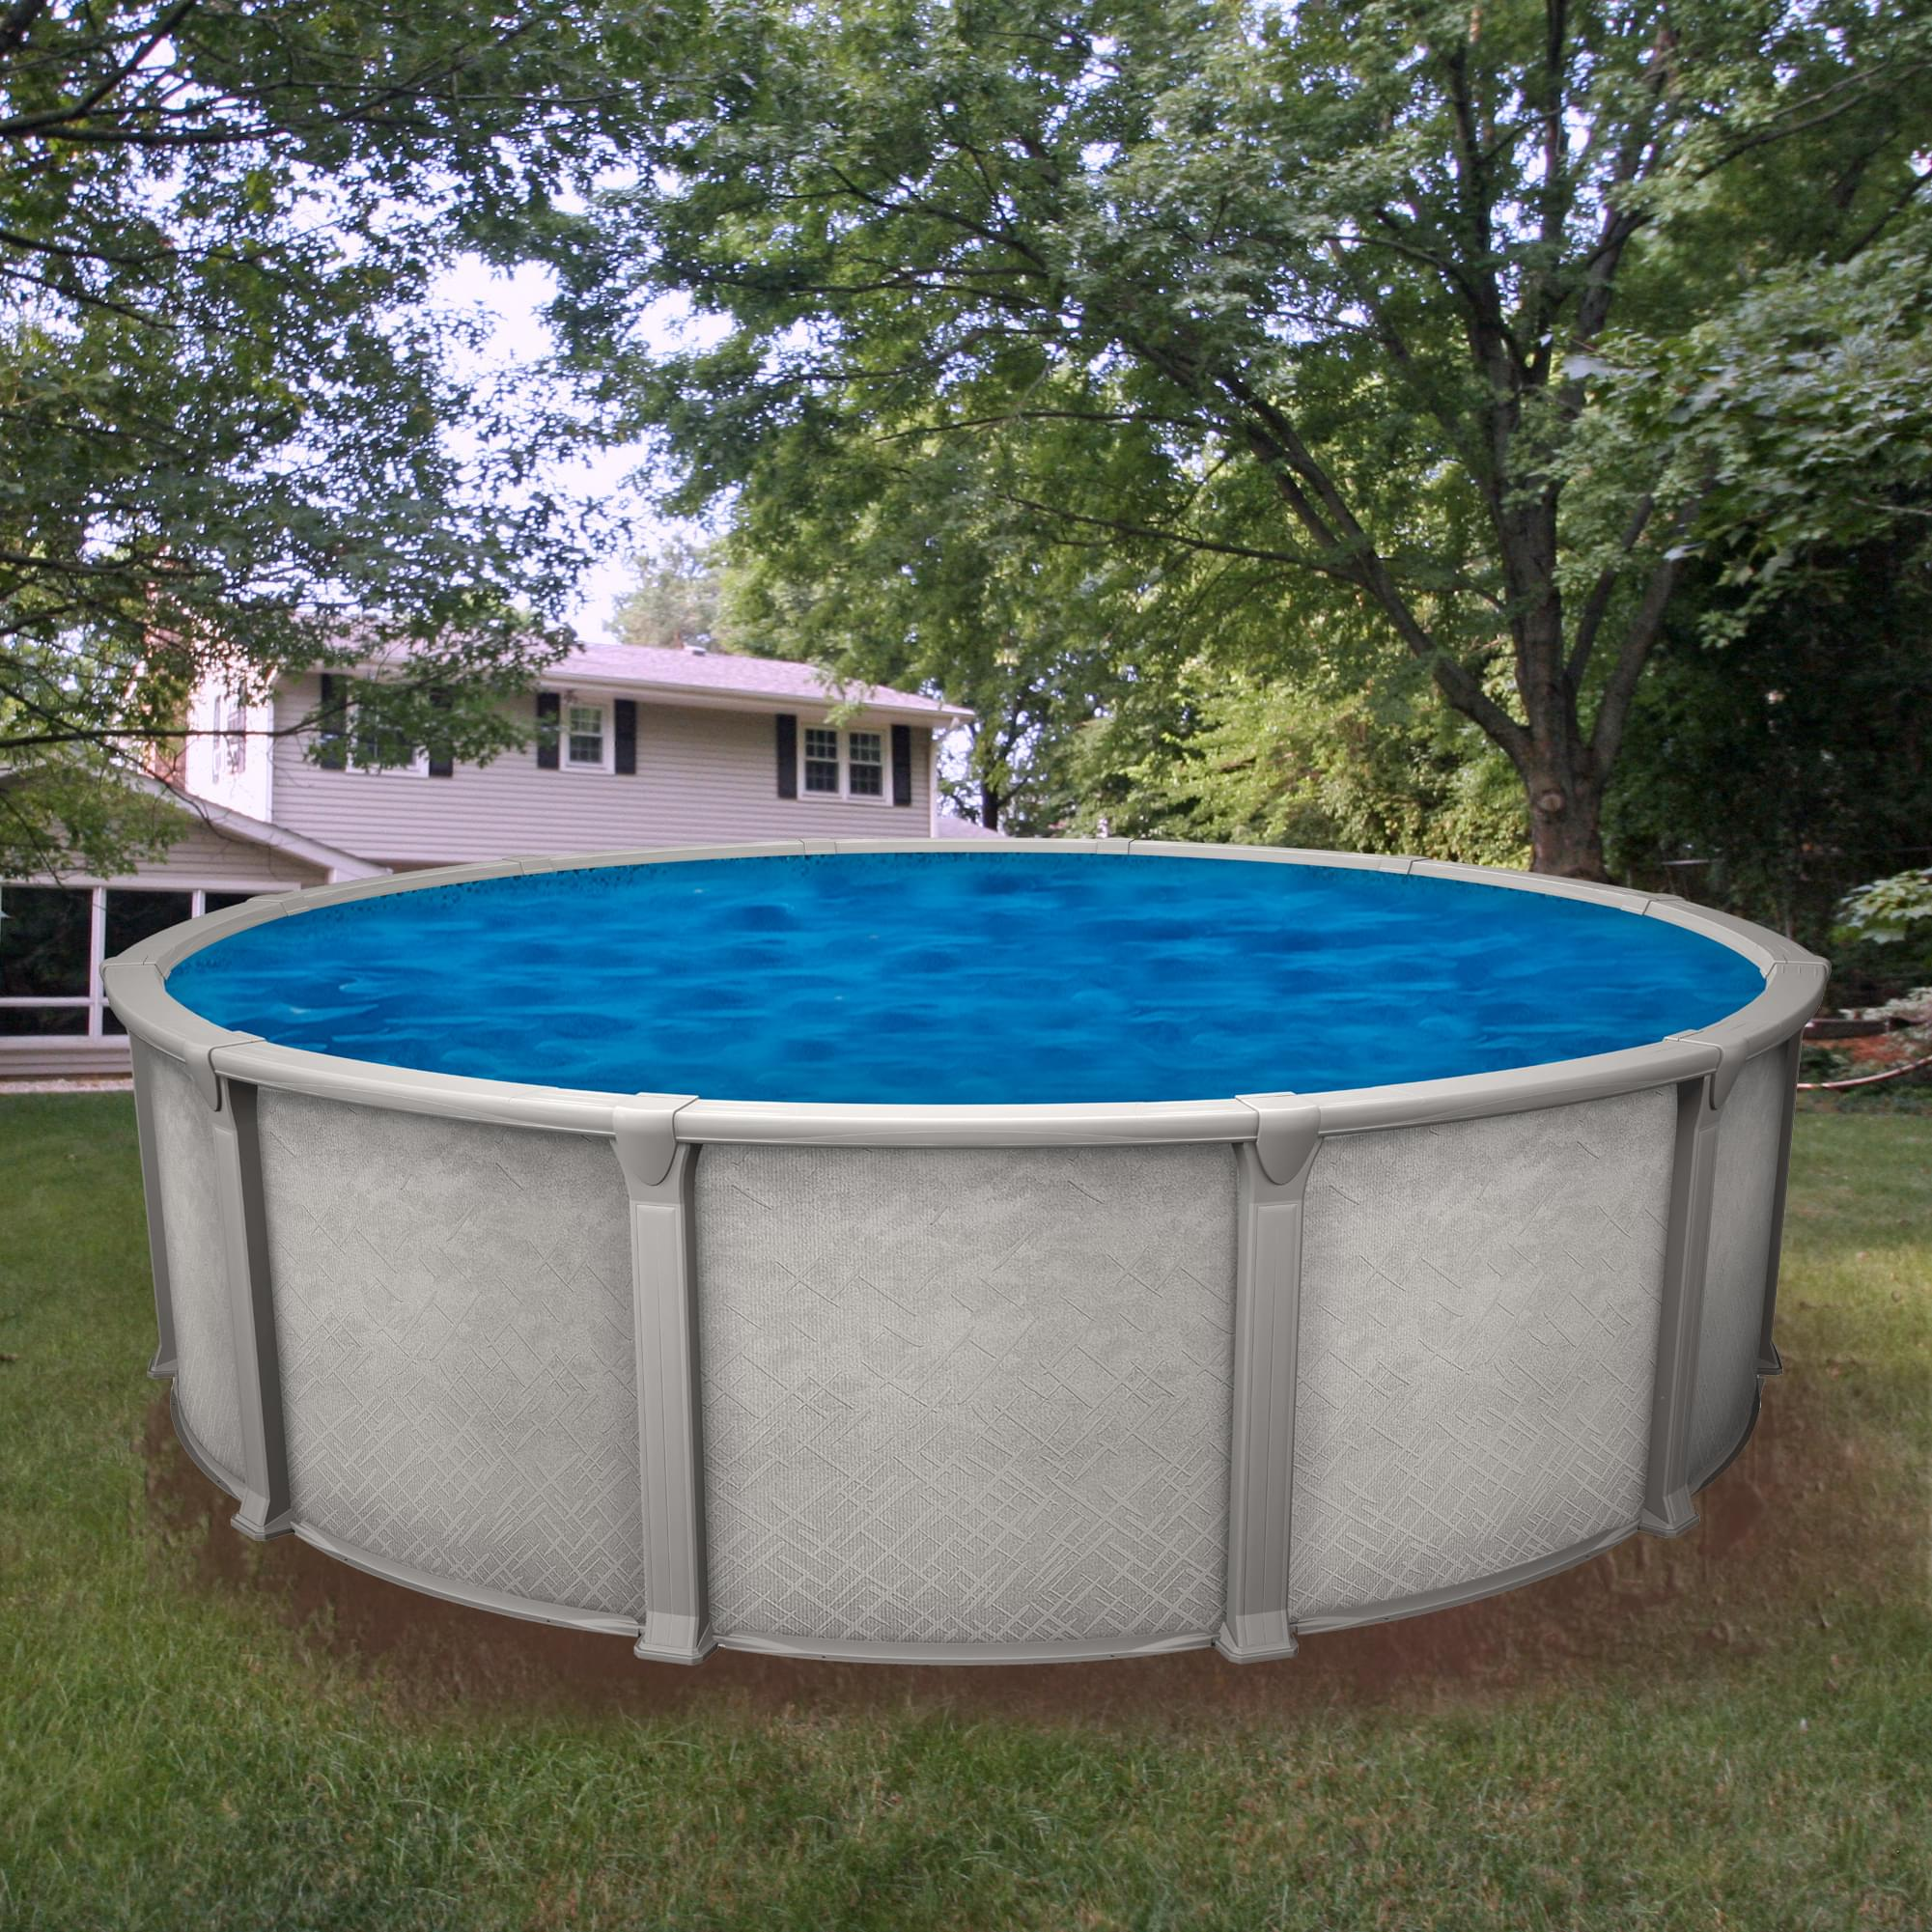 Galaxy 24 ft round above ground pool pool supplies canada for Liner piscine turquoise